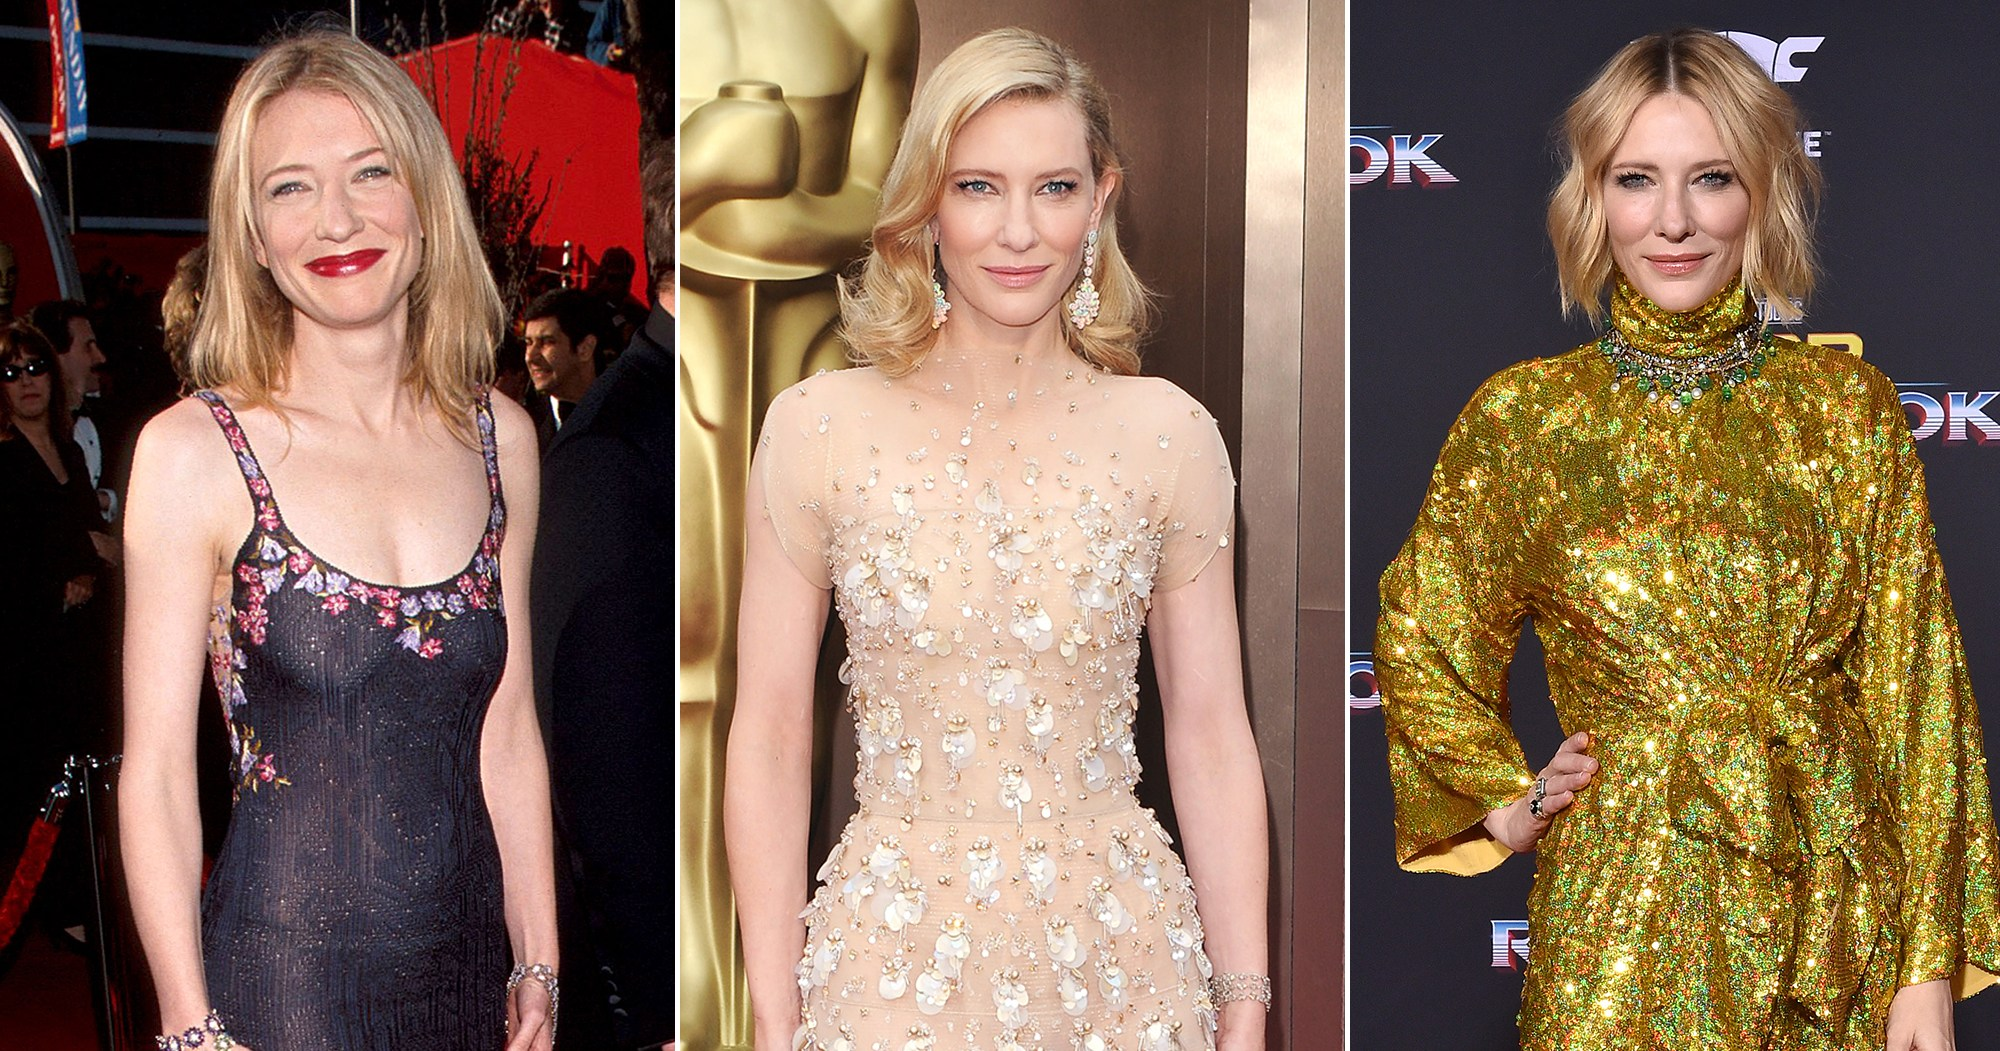 Happy 50th Birthday, Cate Blanchett! See Her Best Red Carpet Fashion Moments